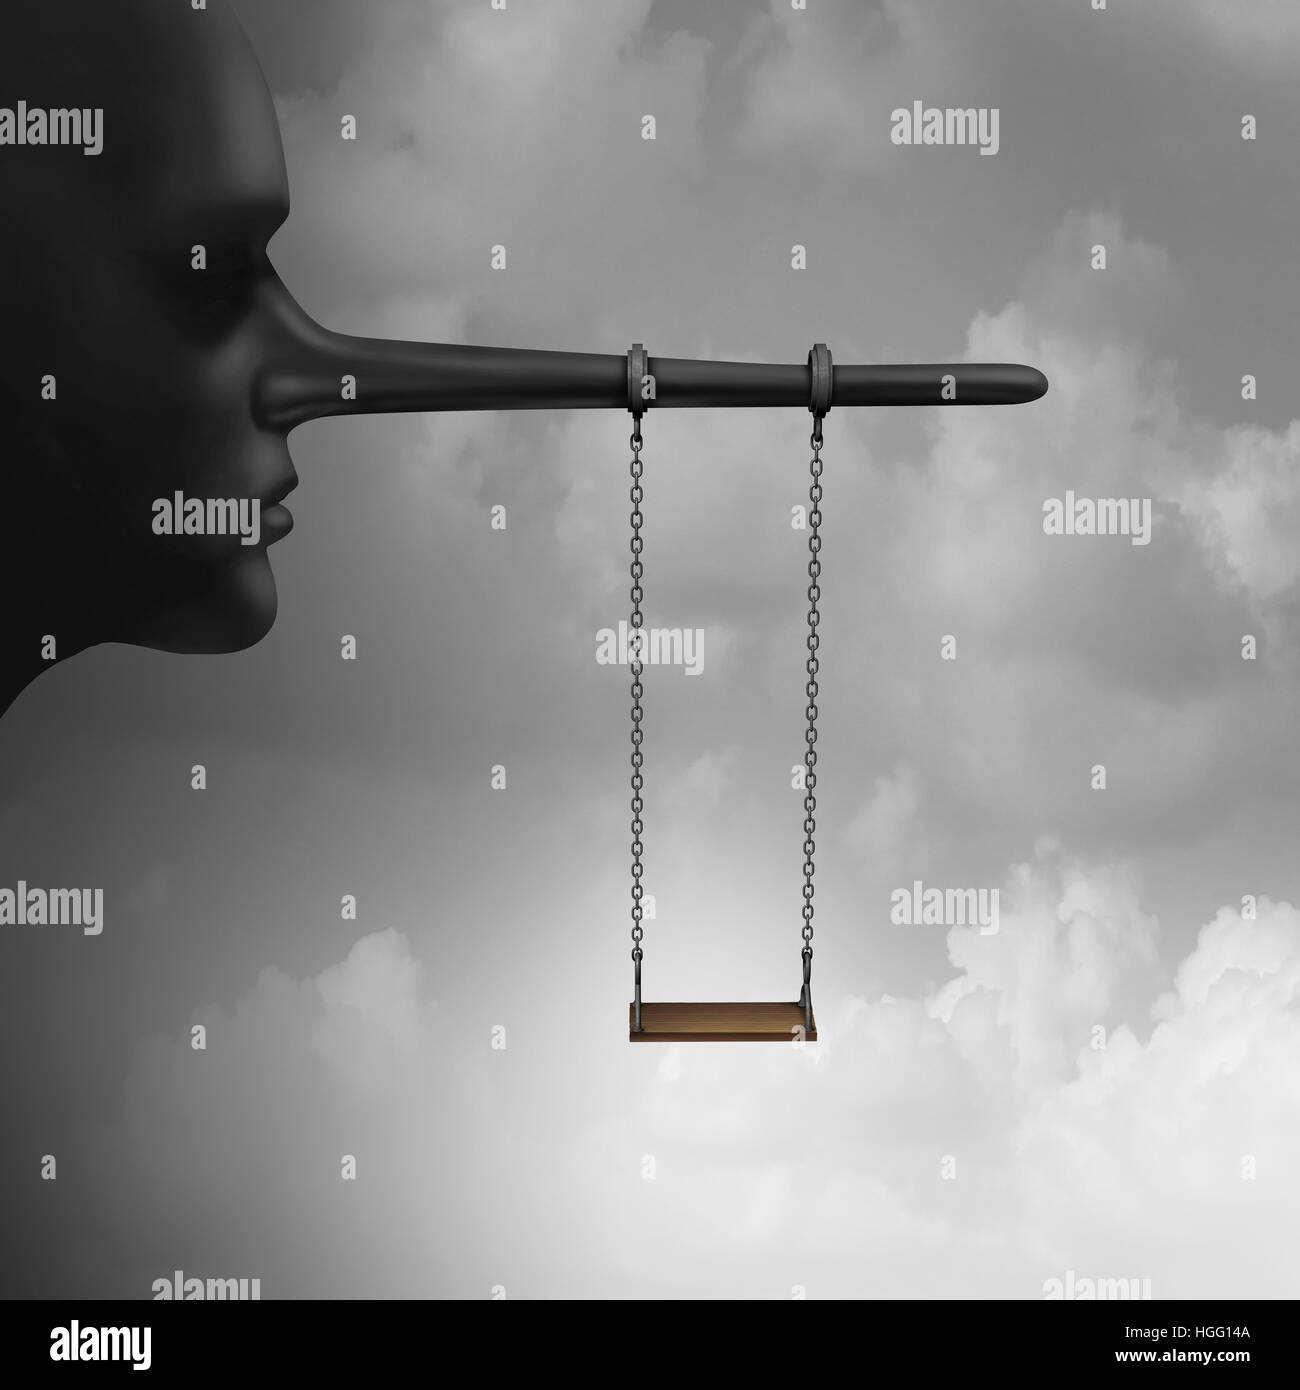 Lying to children and trust psychology of lies to kids concept as a playground child swing hanging from a long nose - Stock Image